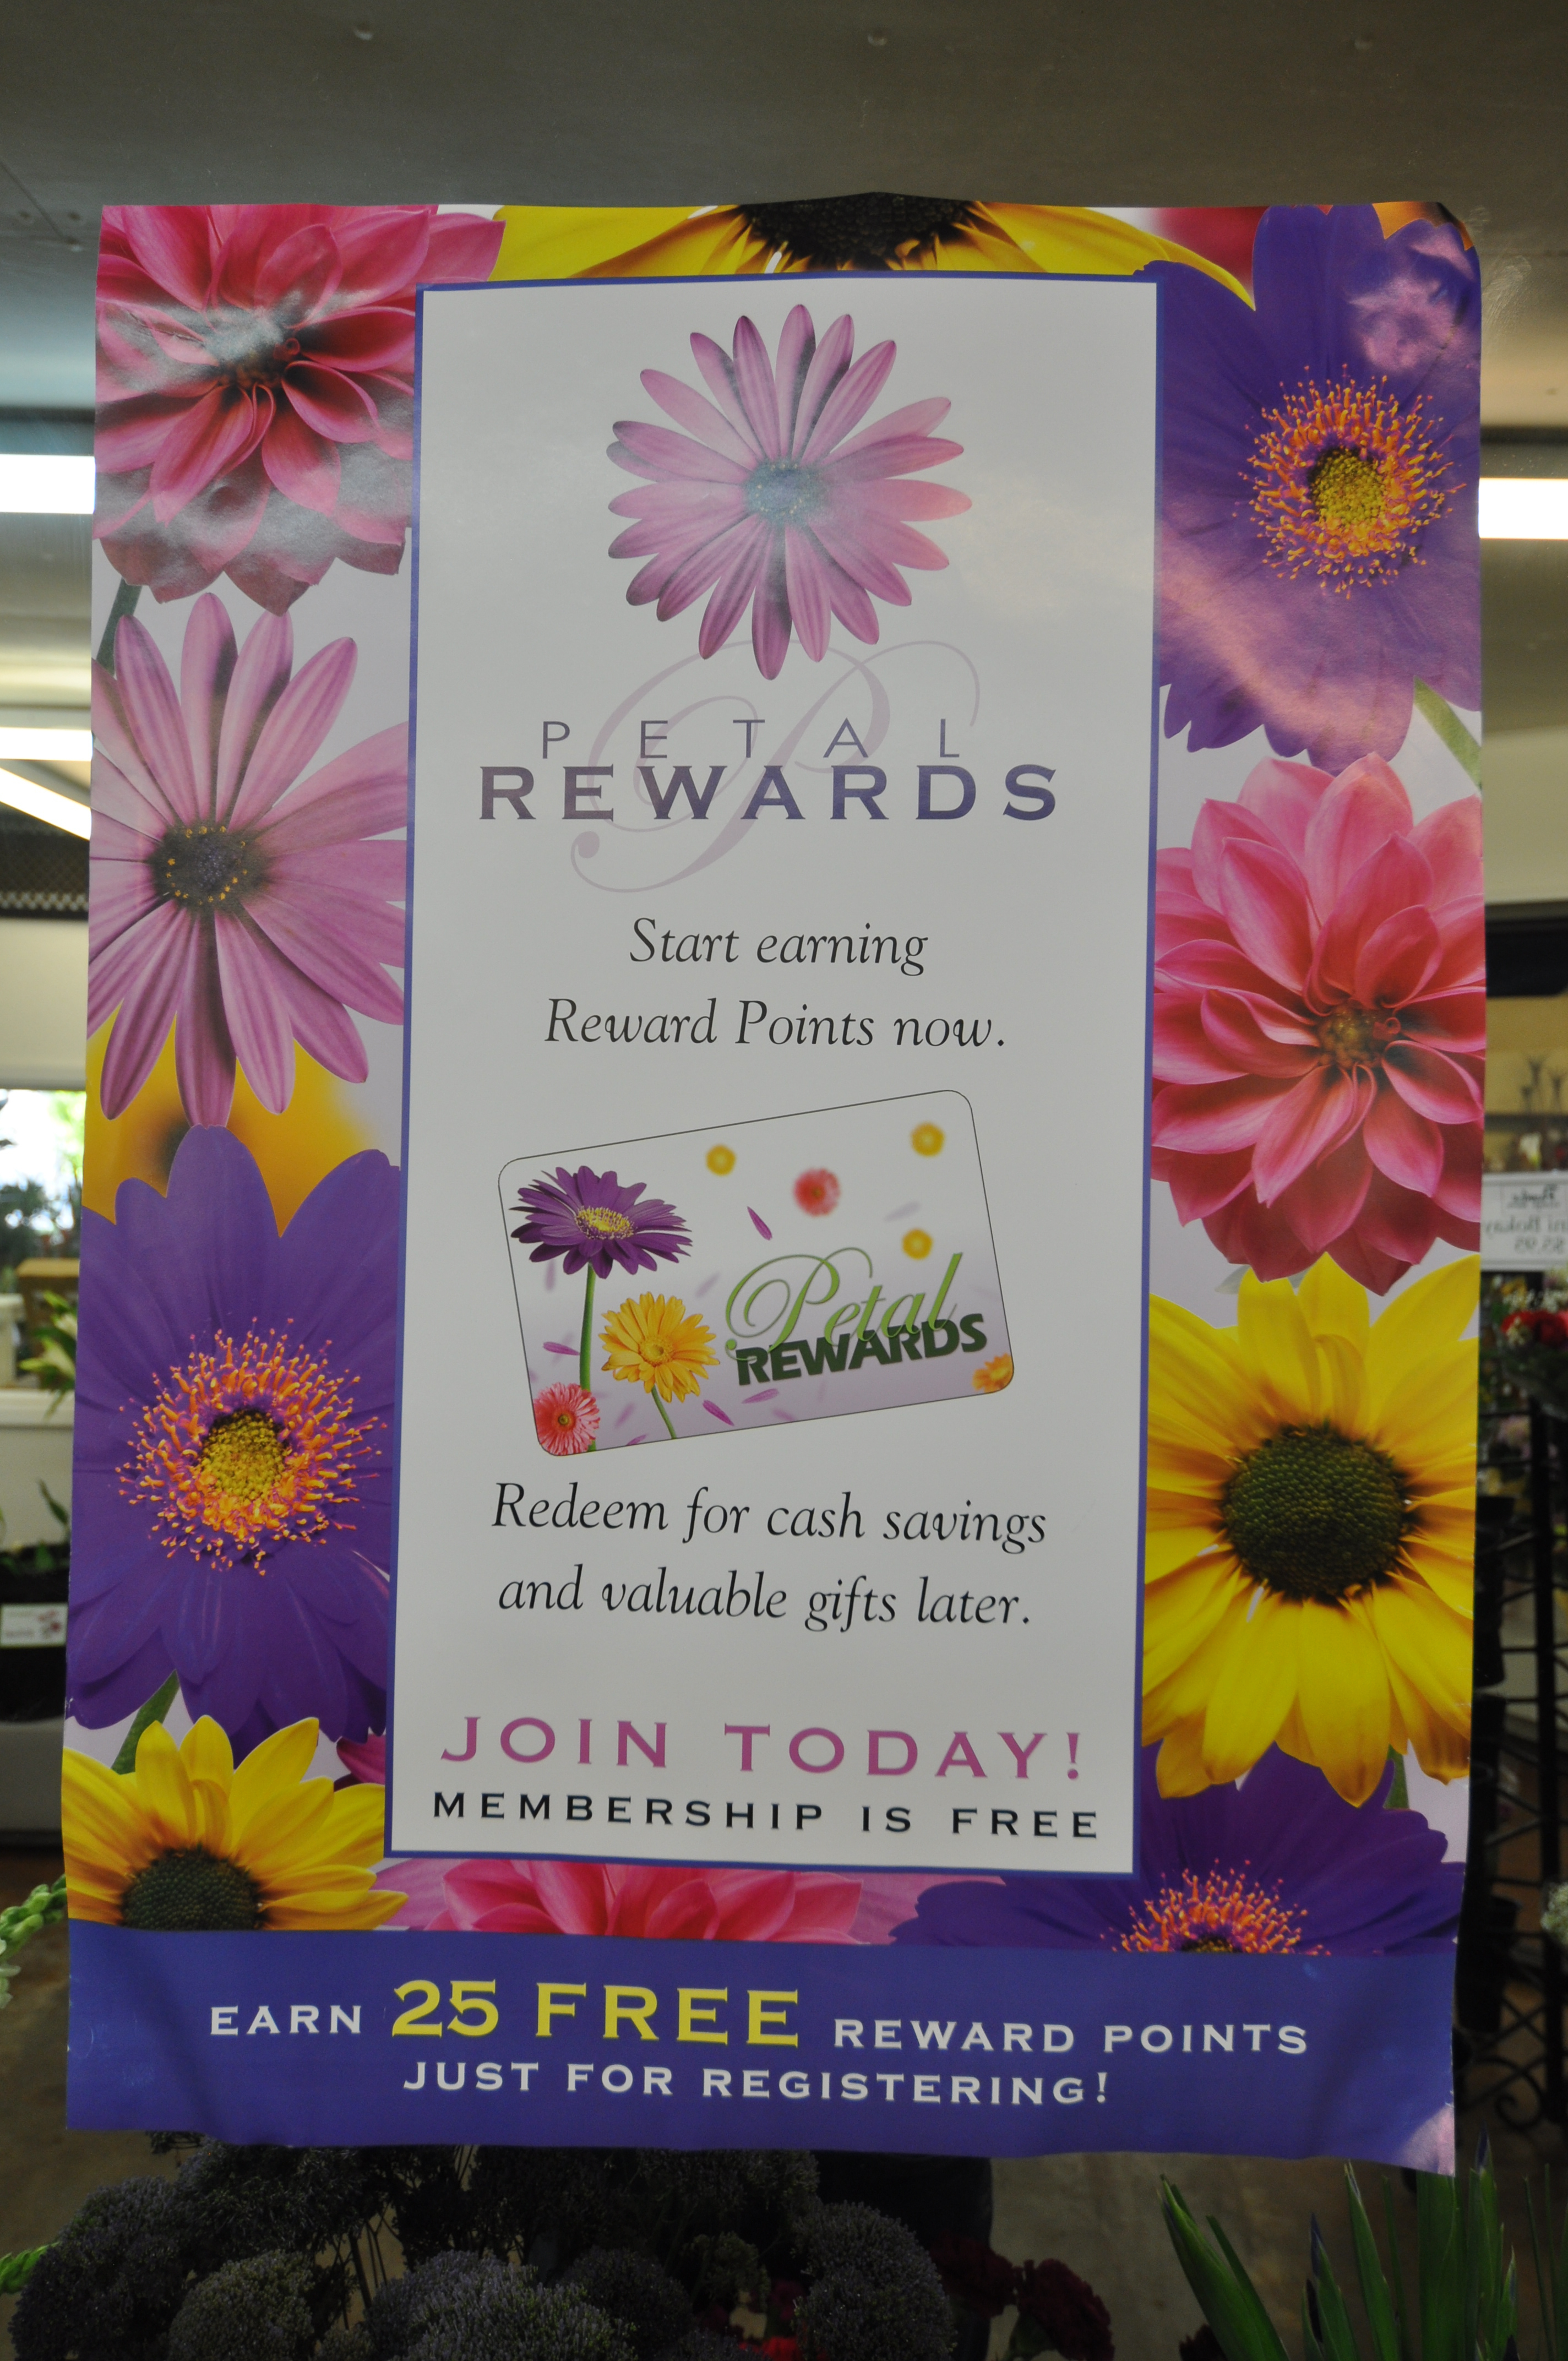 Peoples Flower Shops Far North Location Coupons near me in Albuquerque